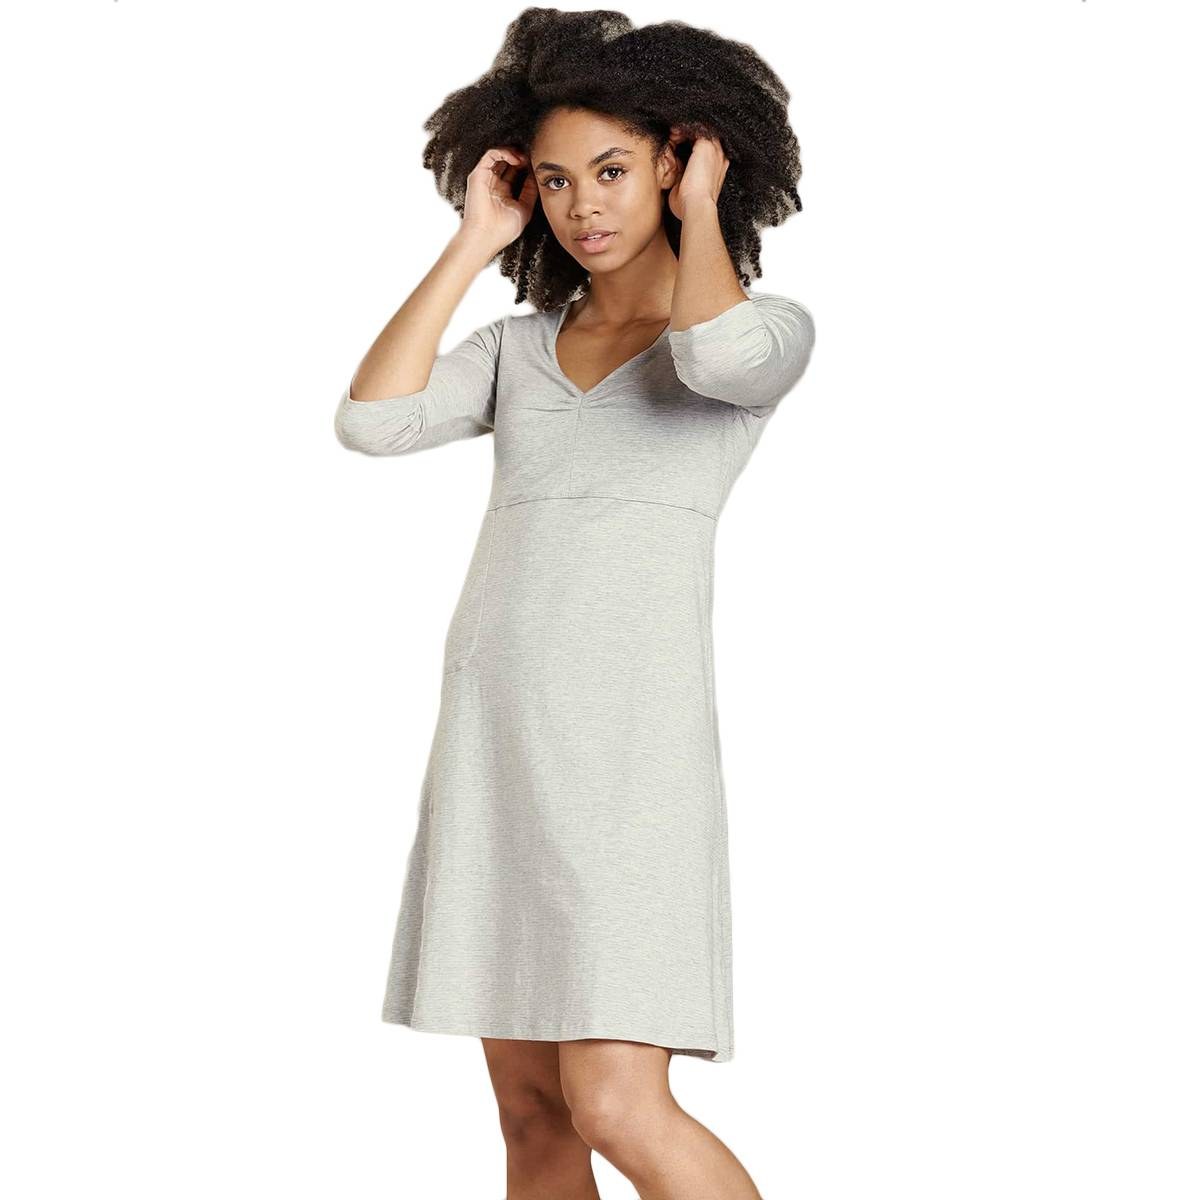 TOAD AND CO Toad & Co. Women's Rosalinda Dress - Size S